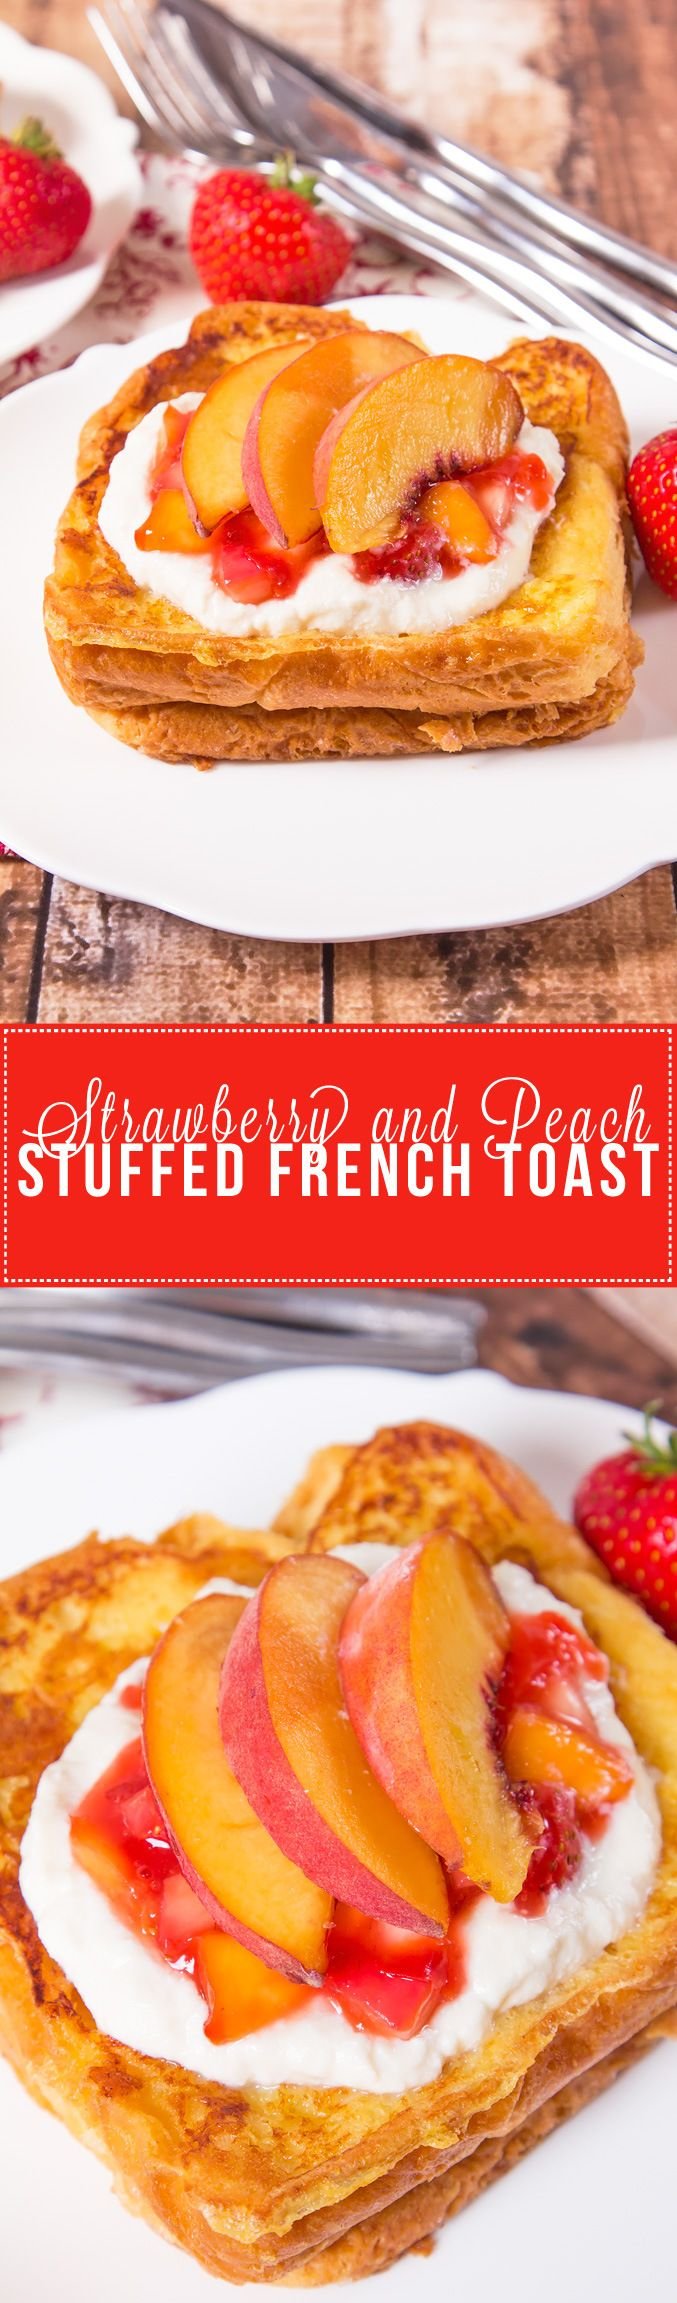 Love Decadent Brunches On The Weekend? Then Make My Strawberry Peach  Stuffed French Toast With